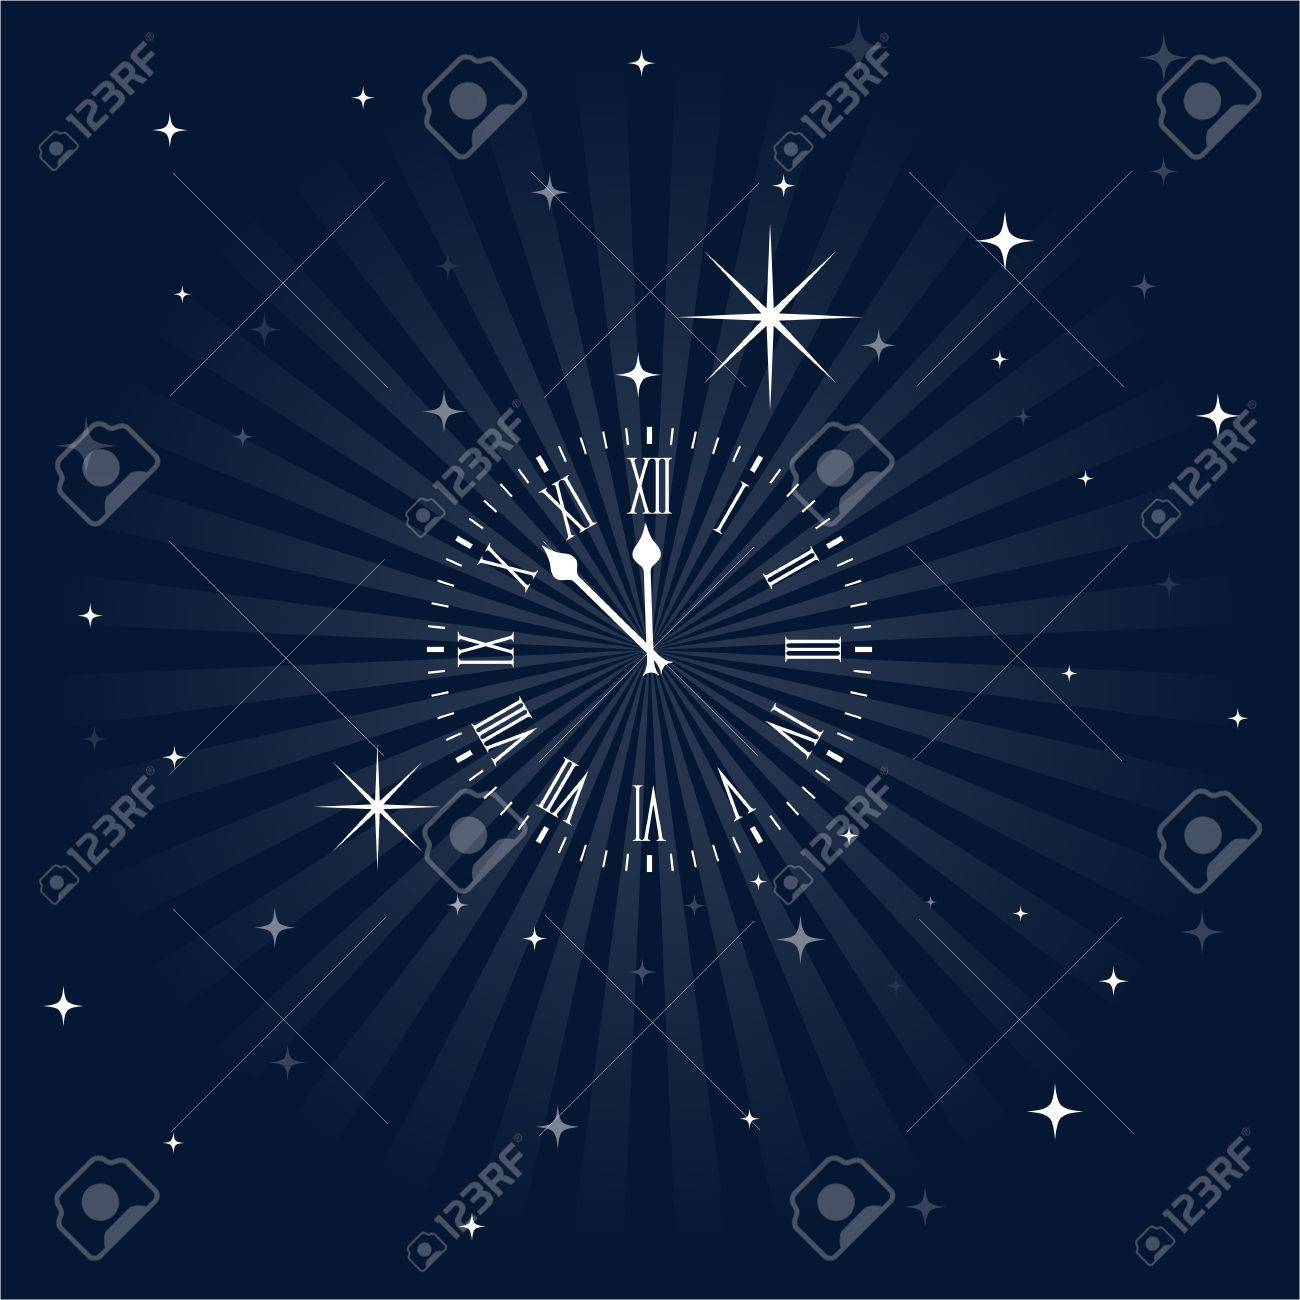 Insomnia clock, close to midnight Stock Vector - 20238539